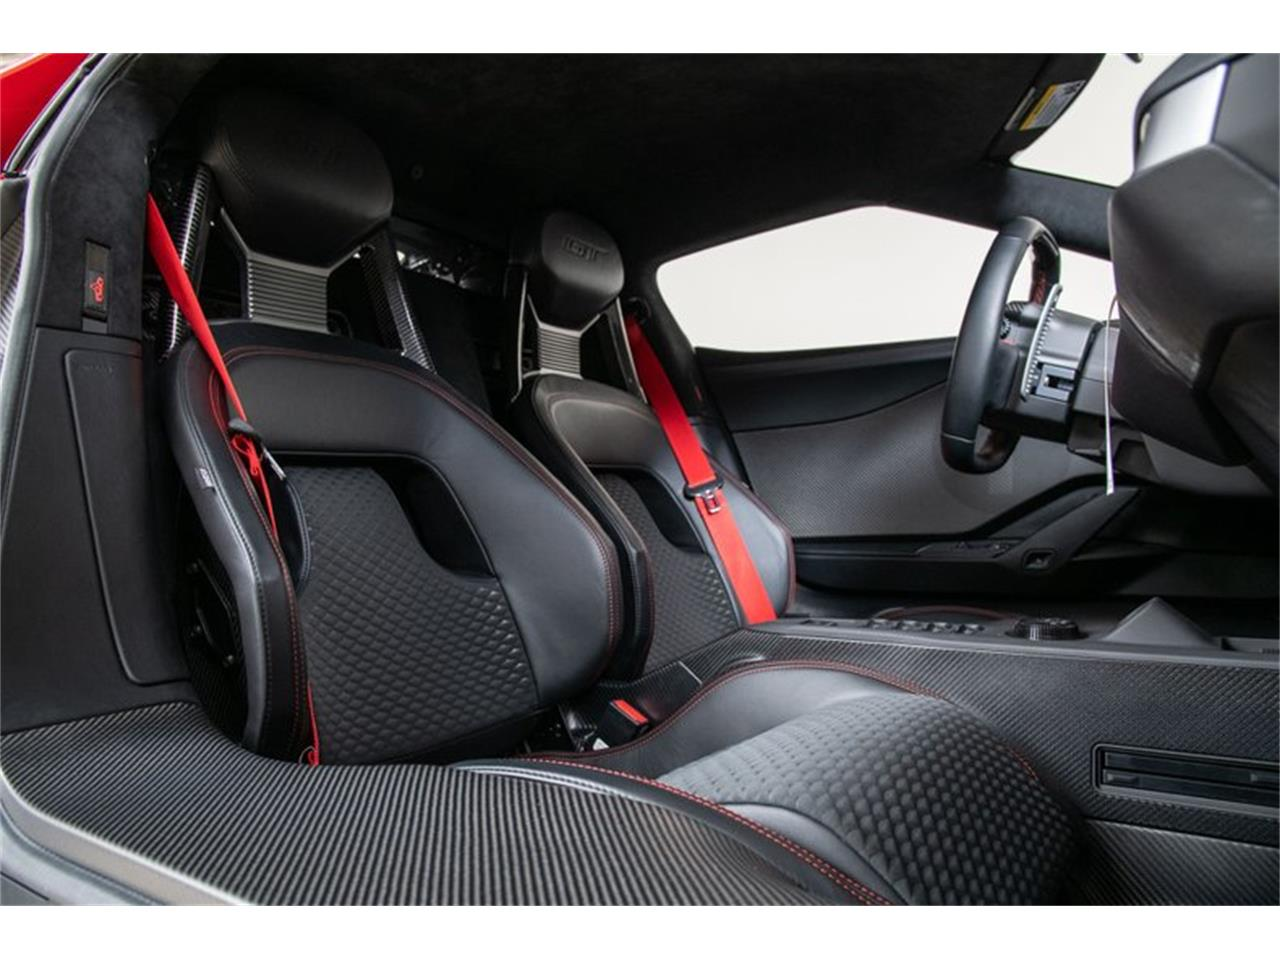 2018 Ford GT (CC-1352517) for sale in Scotts Valley, California